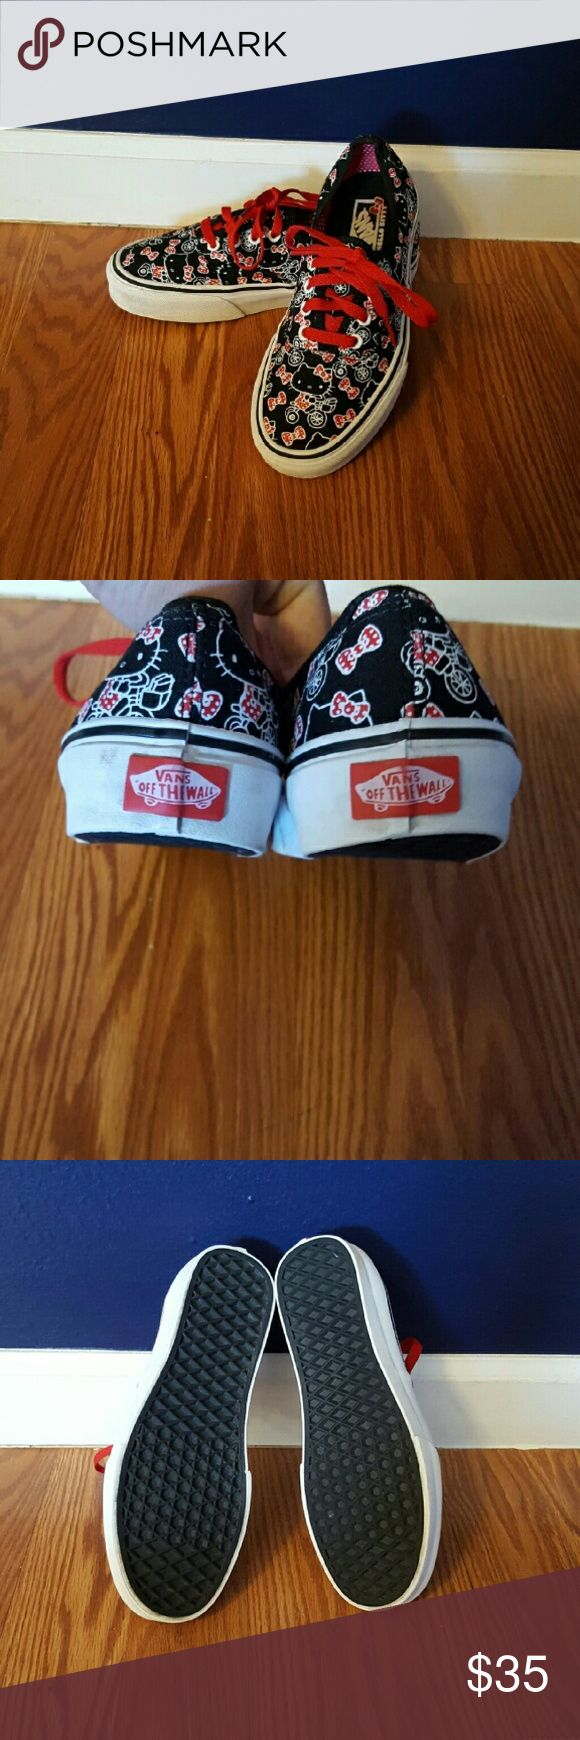 *Limited Edition* Hello Kitty vans Only worn 2 times. Open to offers! Vans Shoes Sneakers